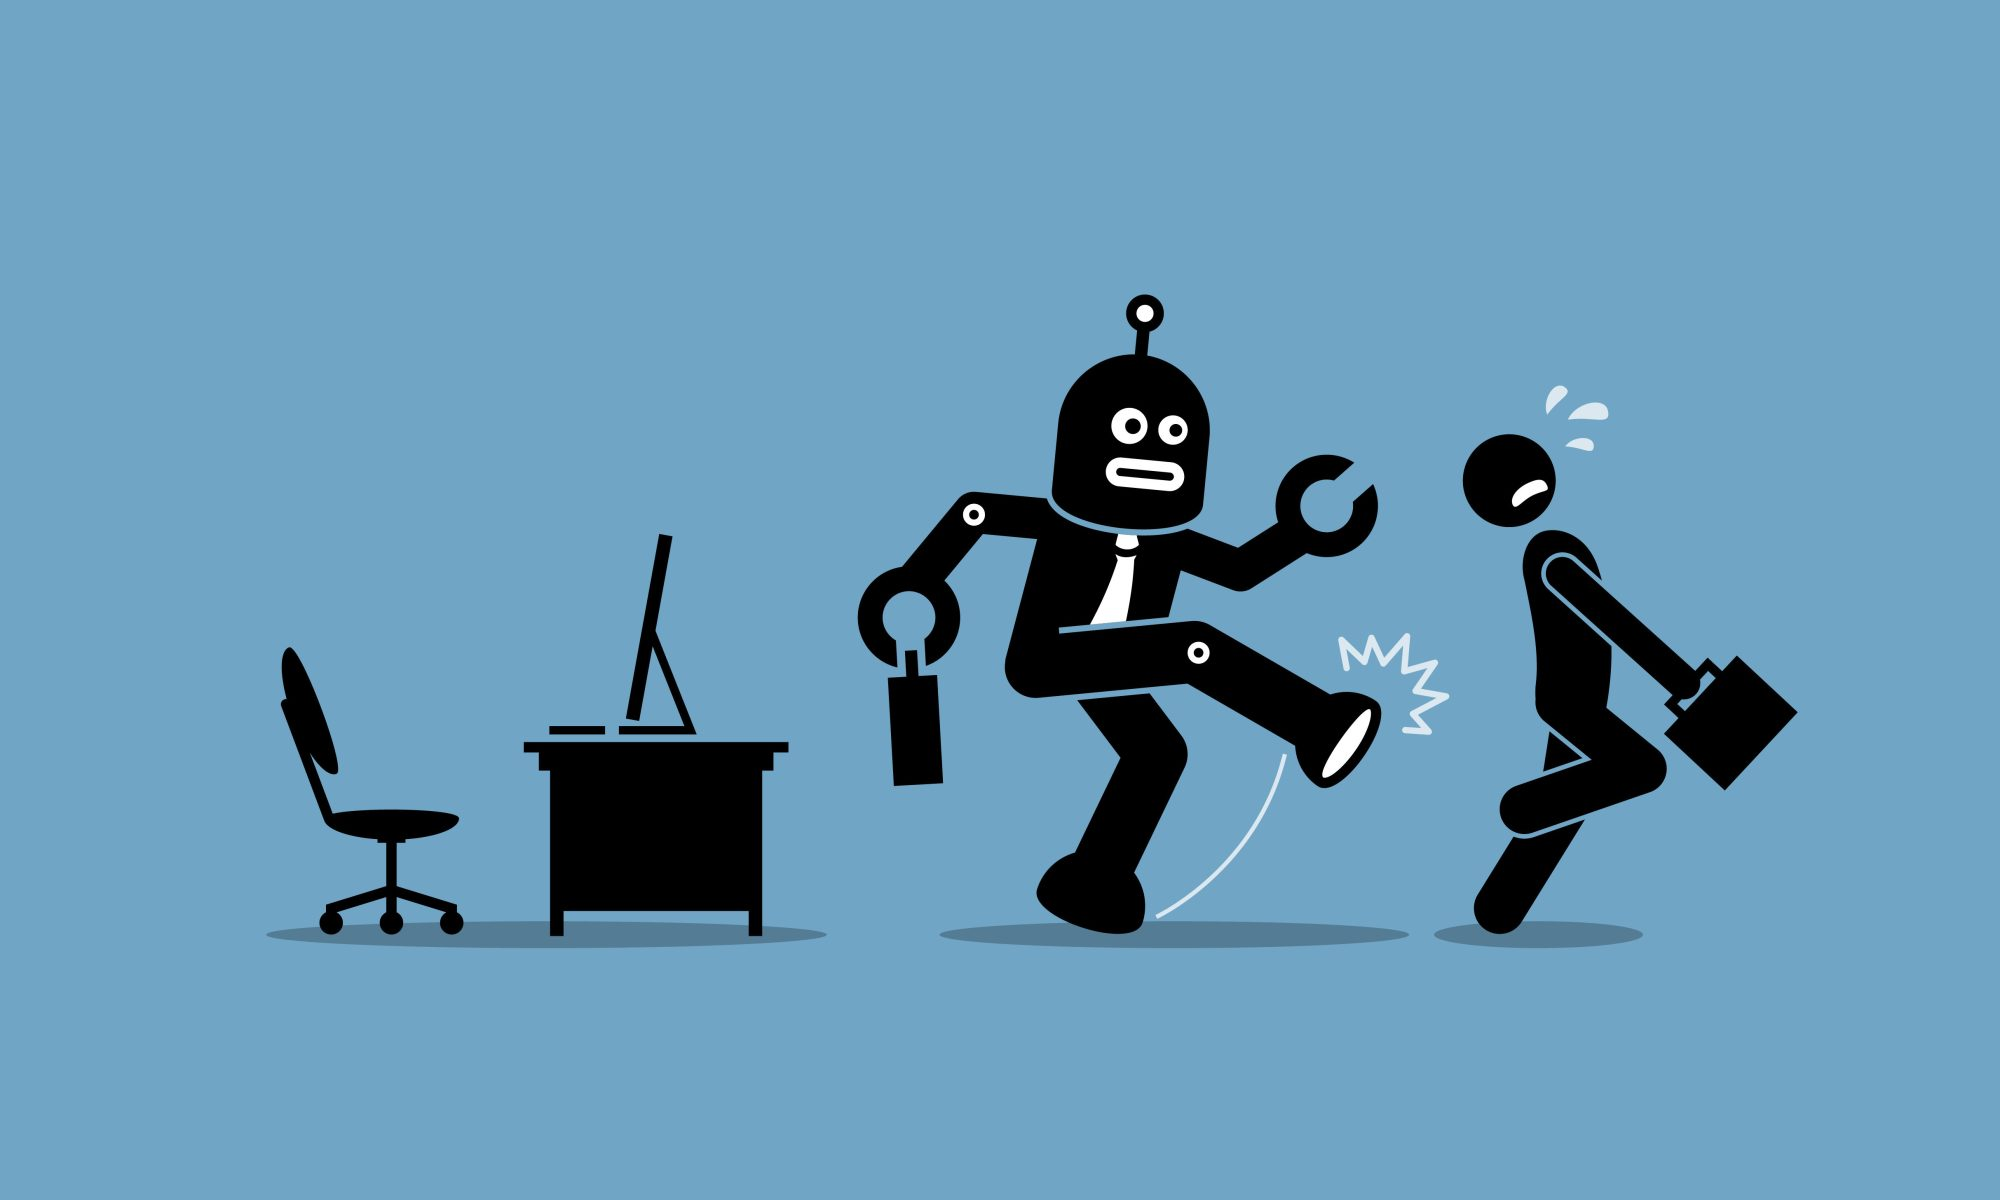 Job technology is shown as a robot kicking a worker from their desk